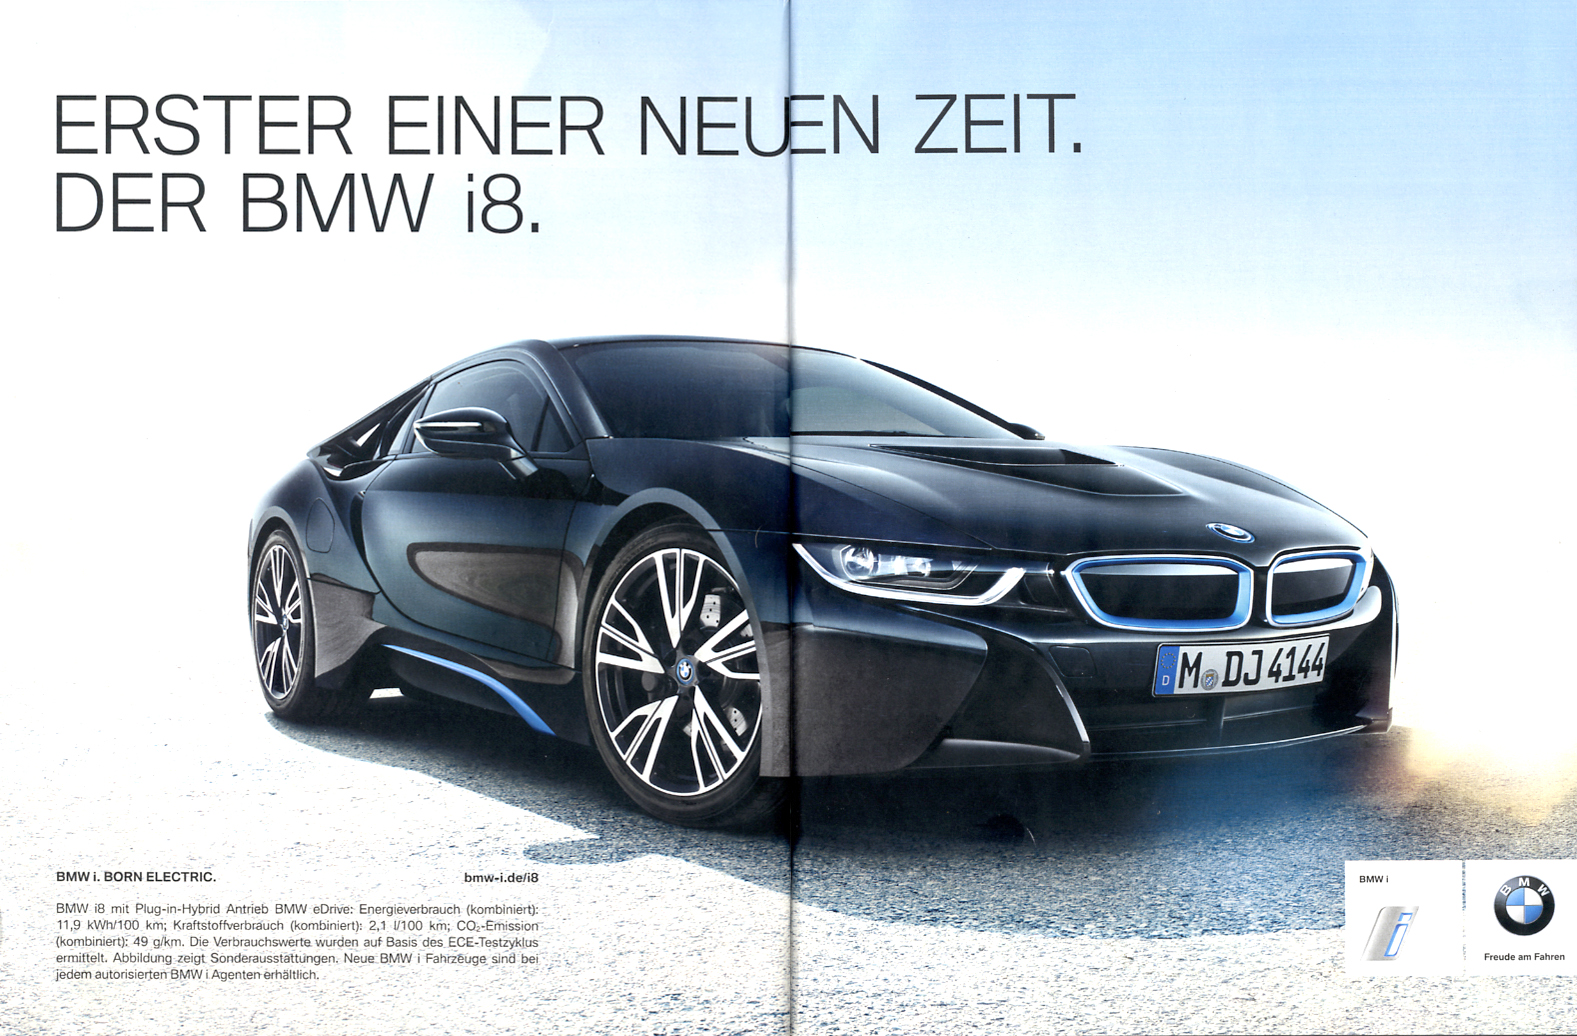 die zukunft beginnt bmw l sst kommunikation f r den i8 anrollen. Black Bedroom Furniture Sets. Home Design Ideas